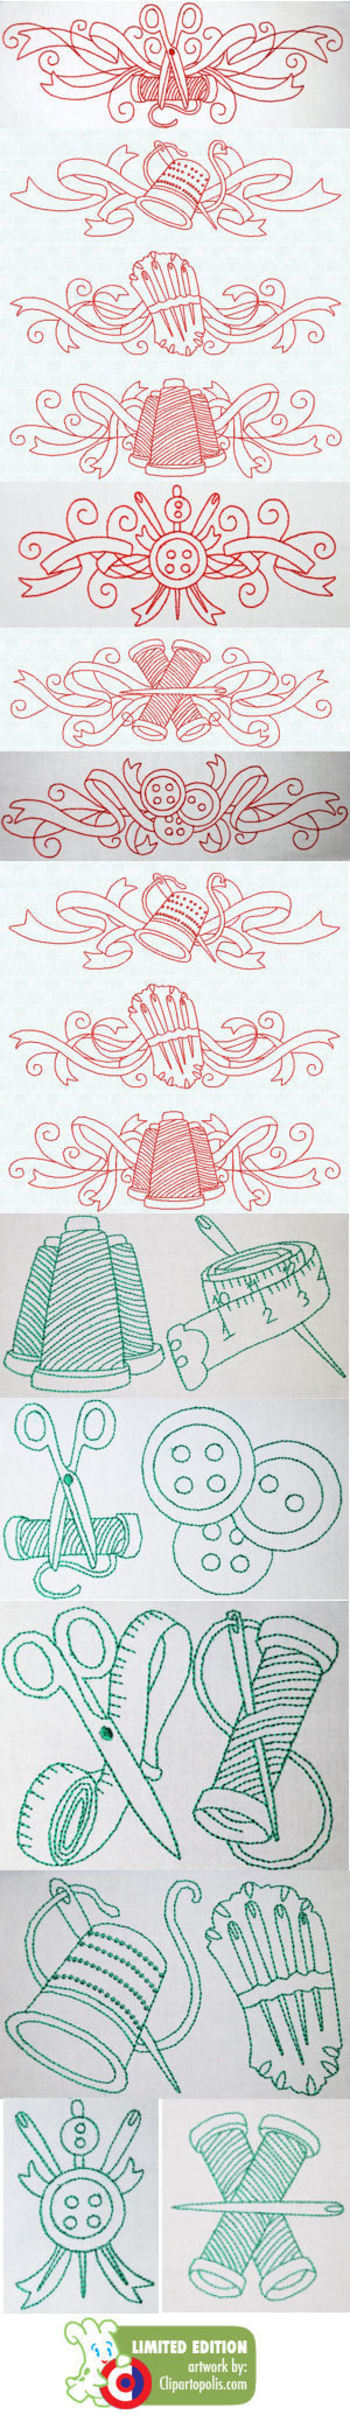 Redwork Embroidery Borders-Embroidery on white,applique onto contrasting fabric patterns and frame